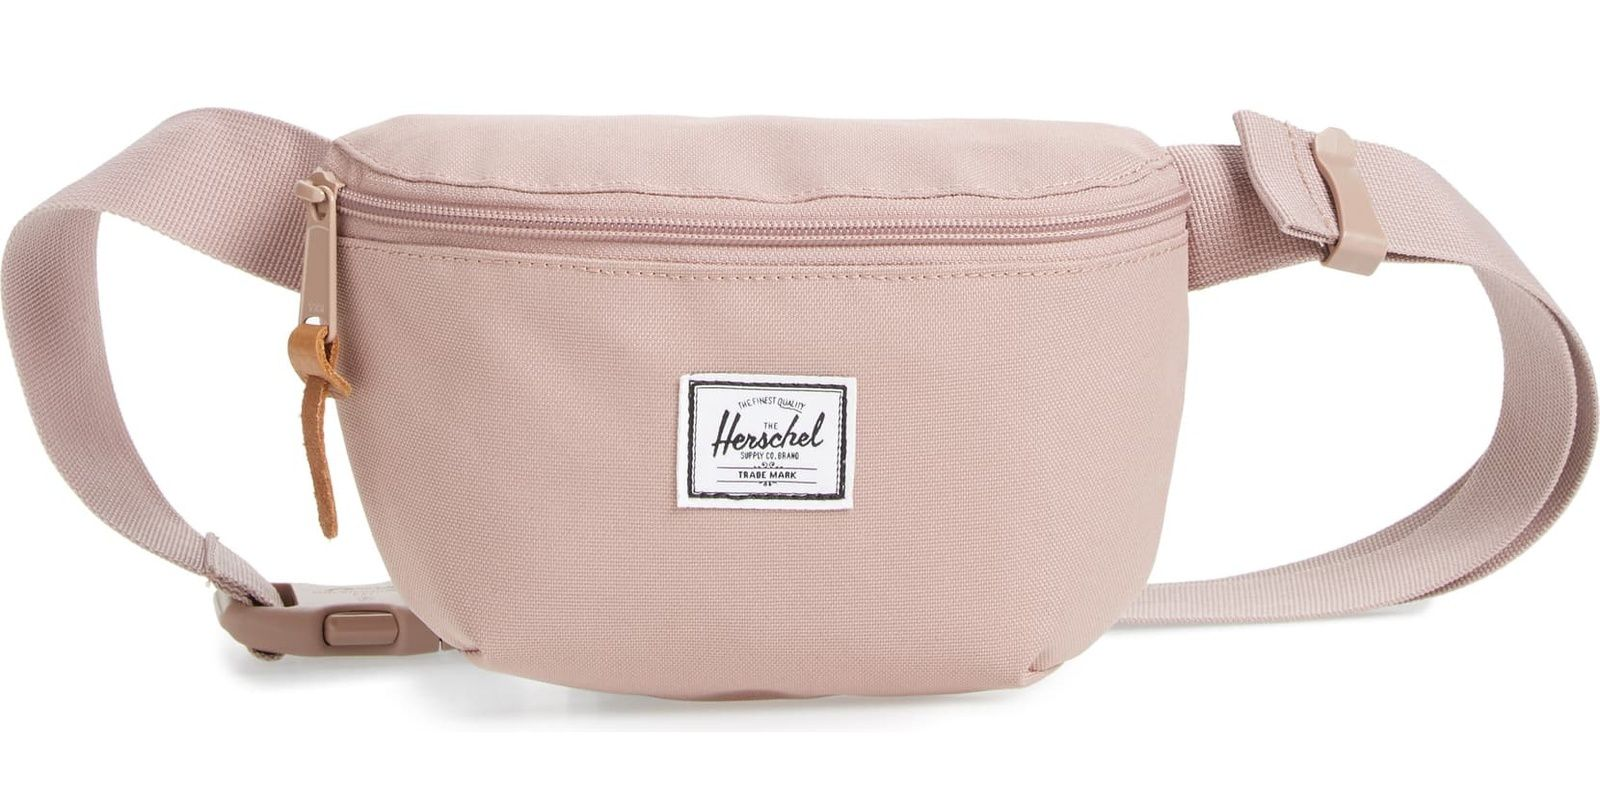 ON TREND - FANNY PACKS !?